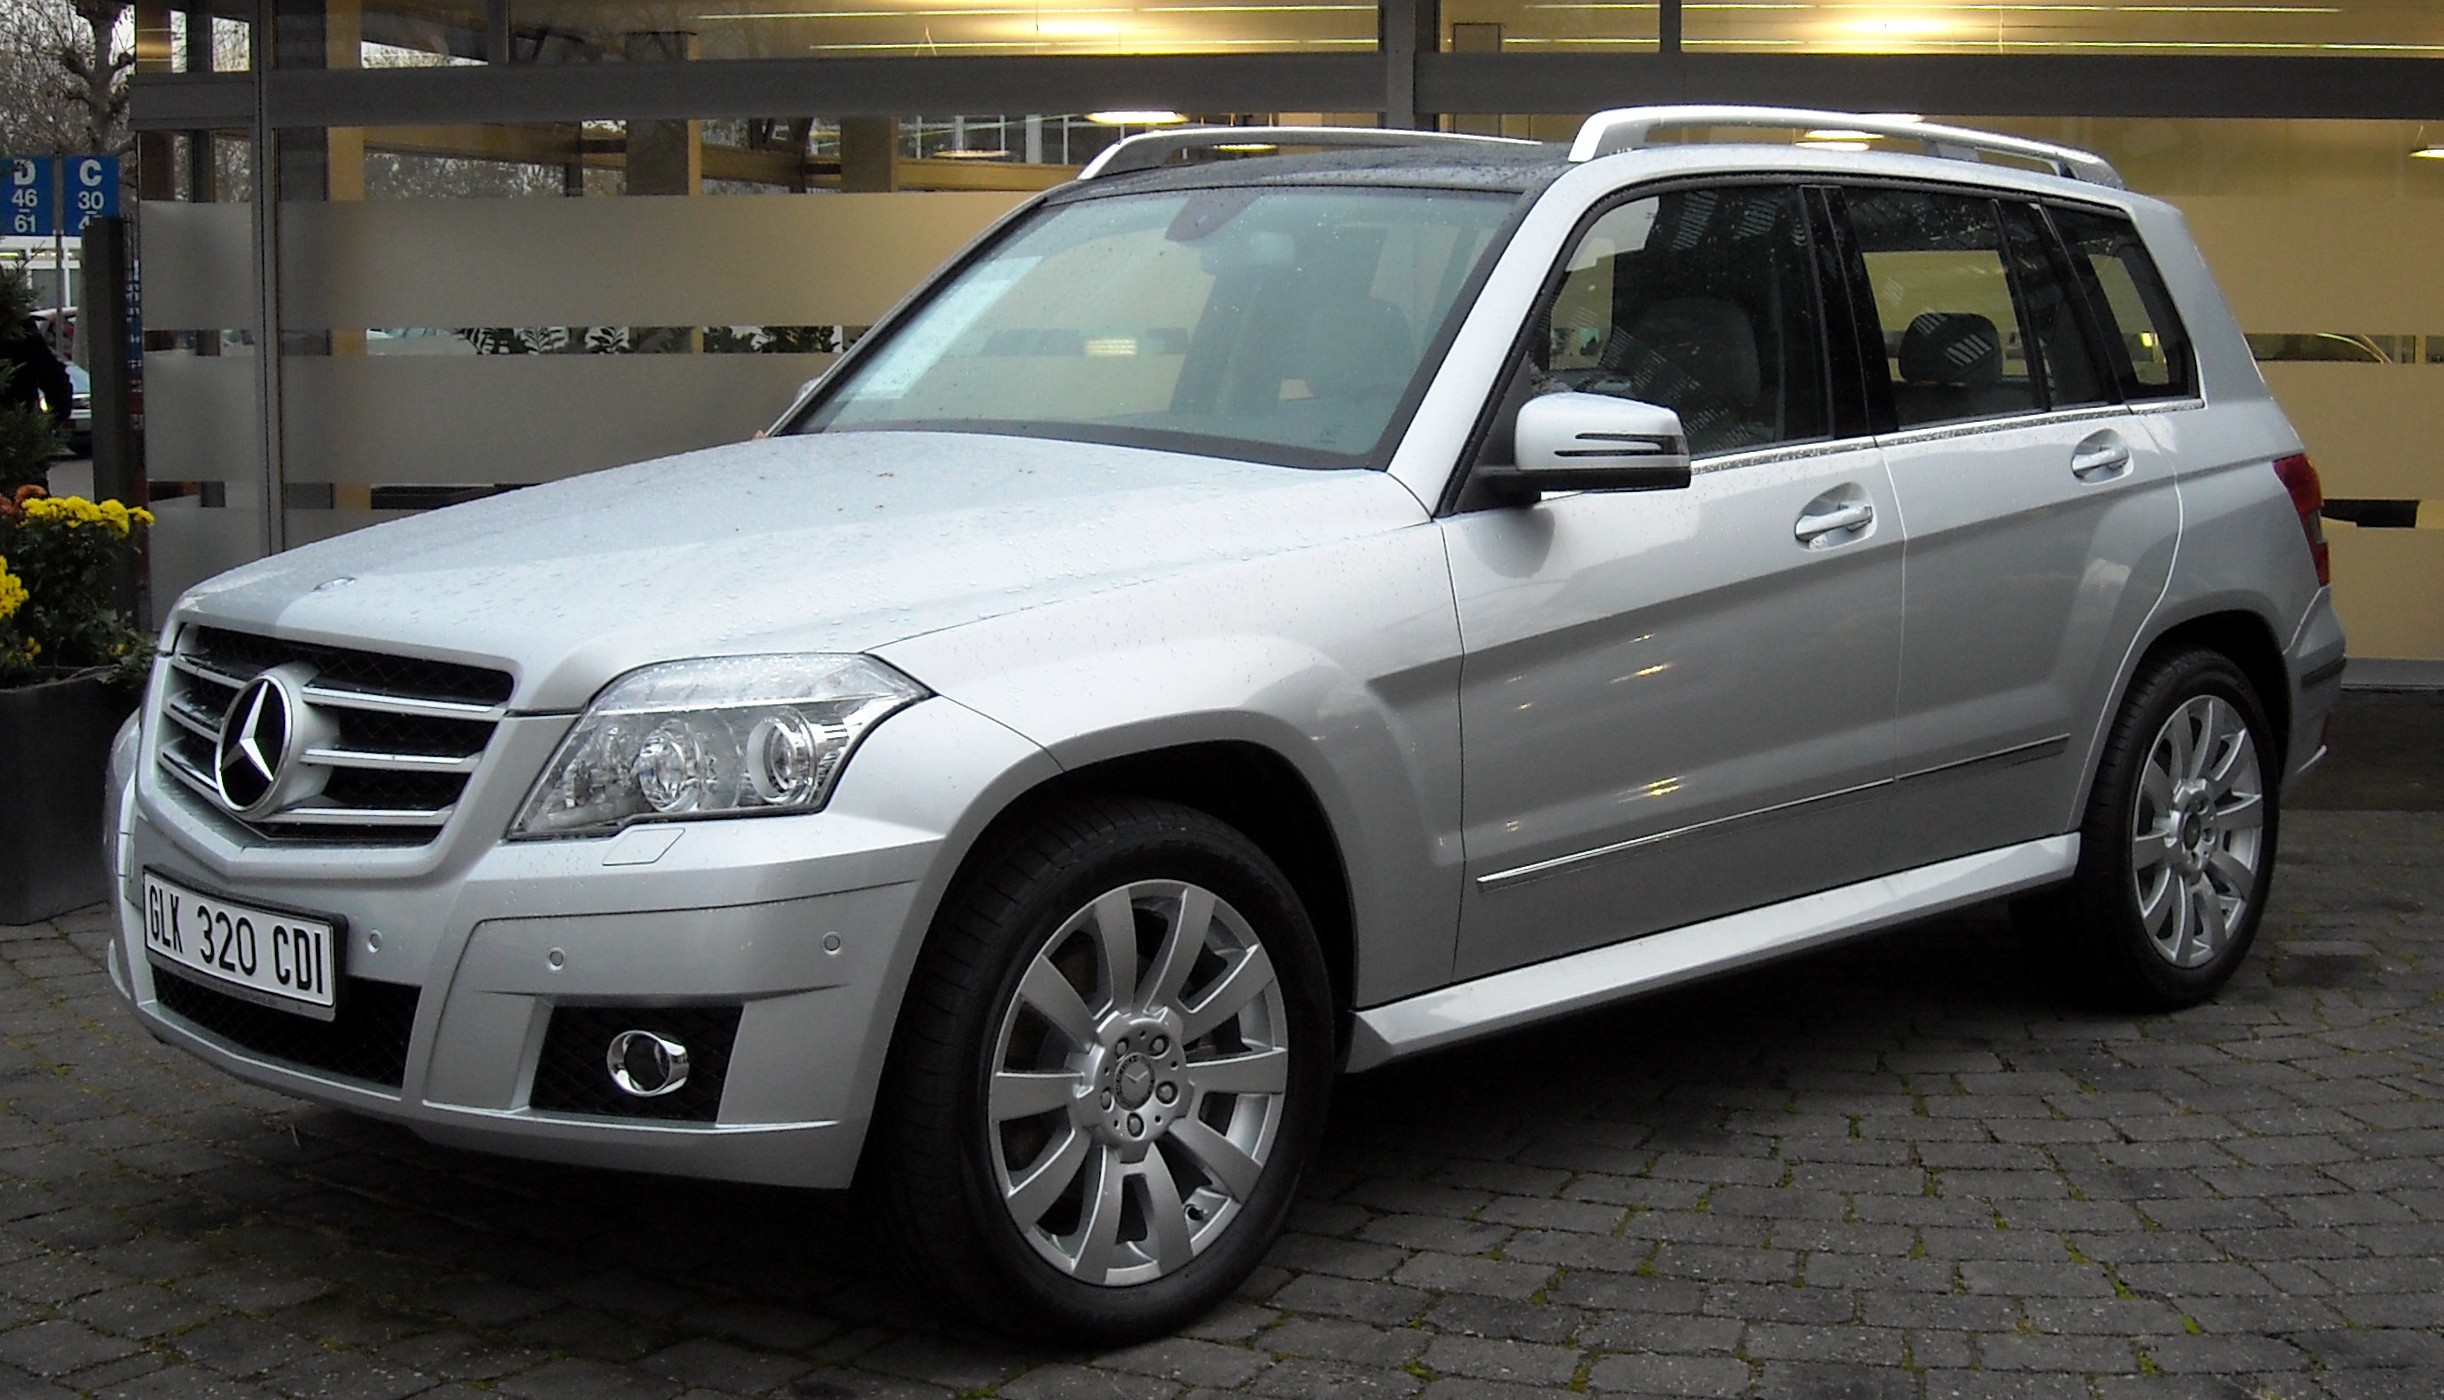 Mercedes benz glk luxury crossover suv review for Mercedes benz glk 2014